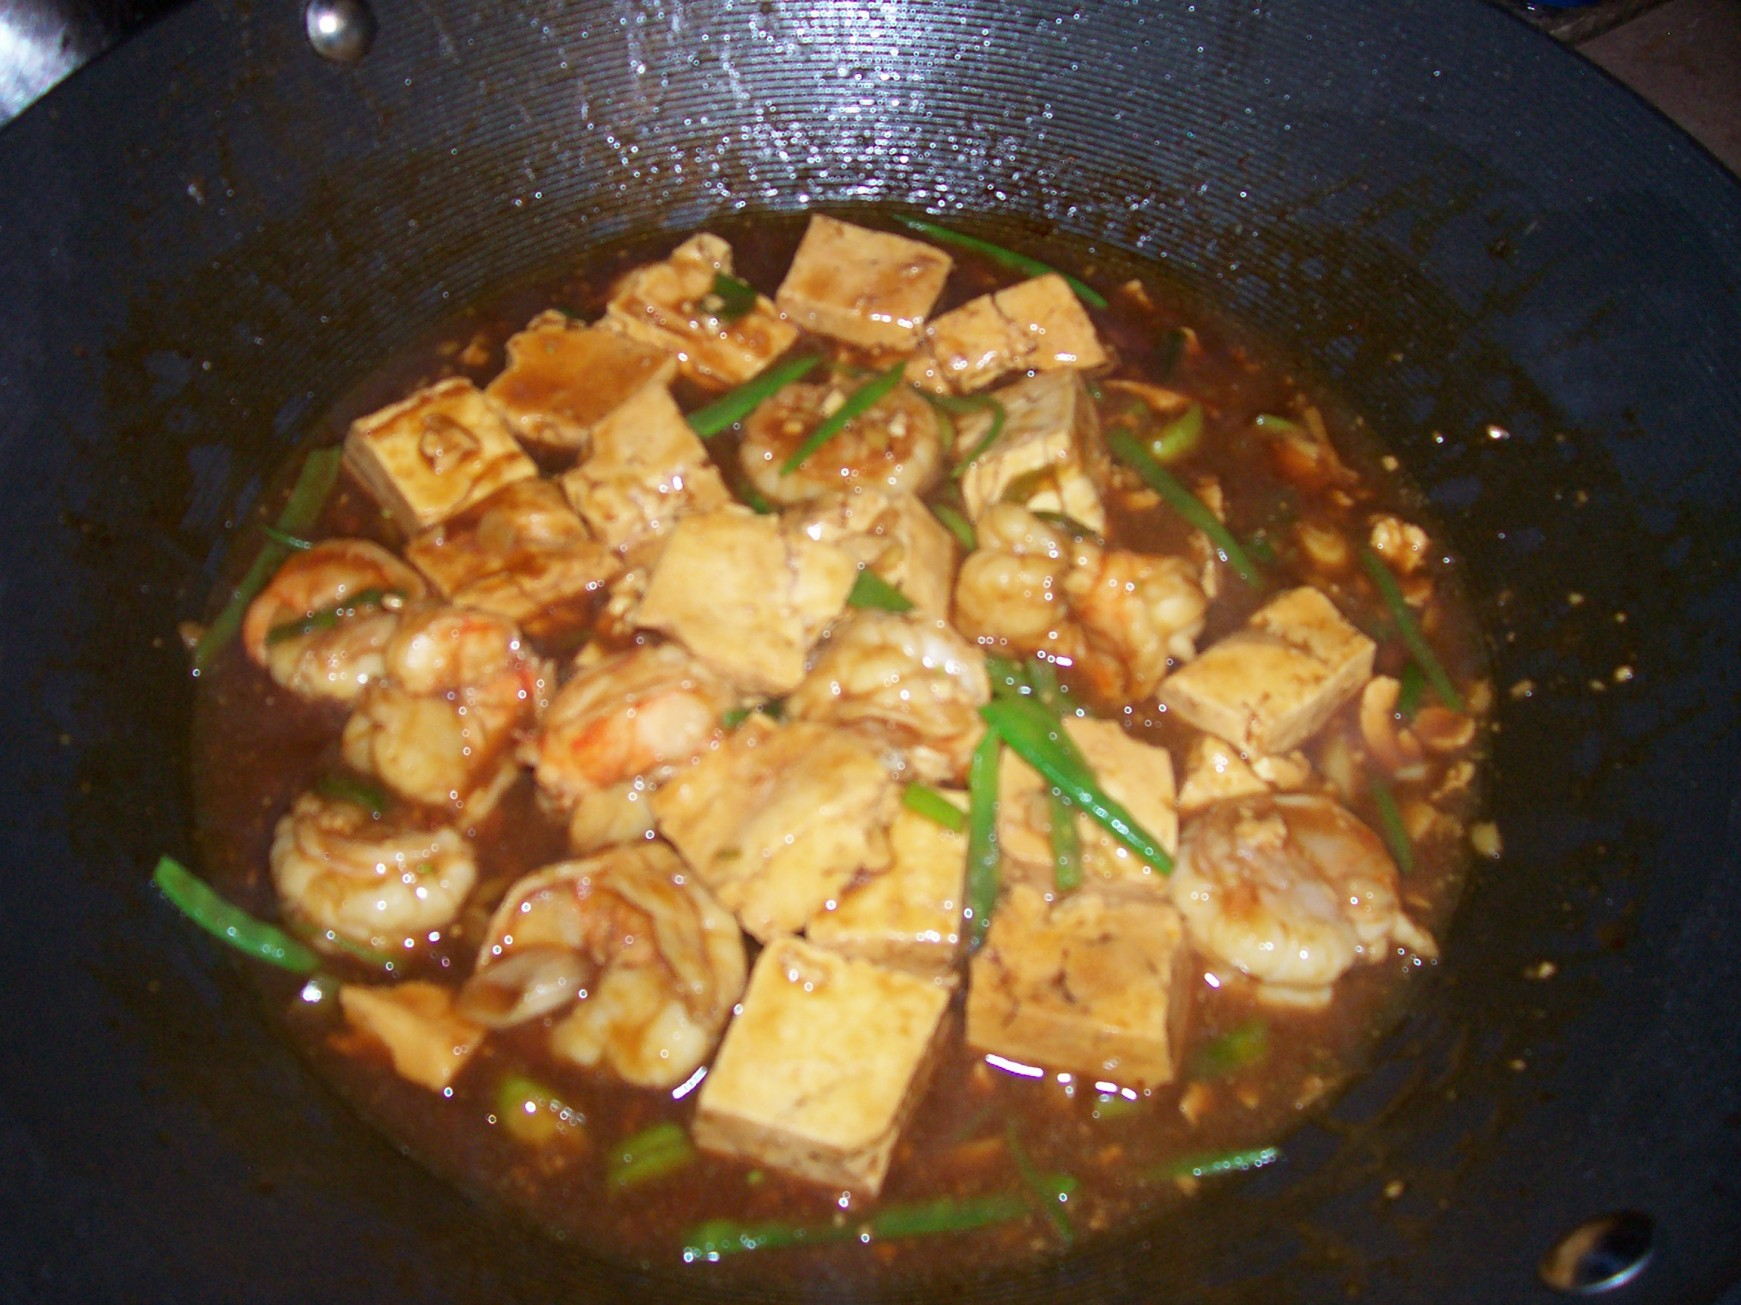 shrimp and tofu stir fry